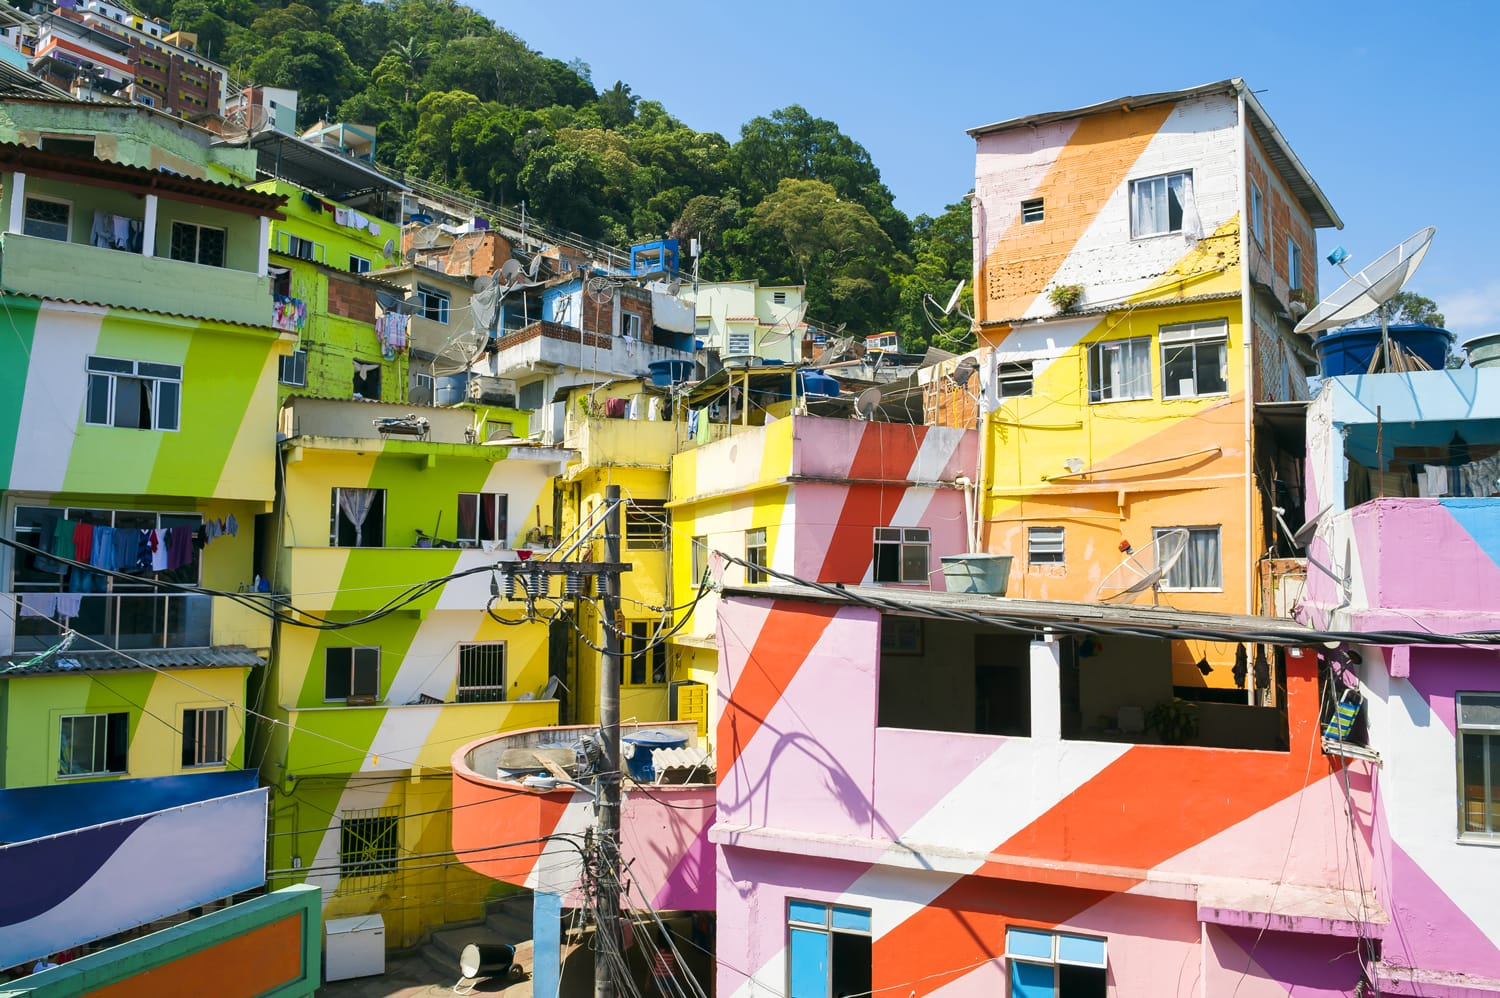 Colorful painted buildings of Favela Santa Marta in Rio de Janeiro Brazil